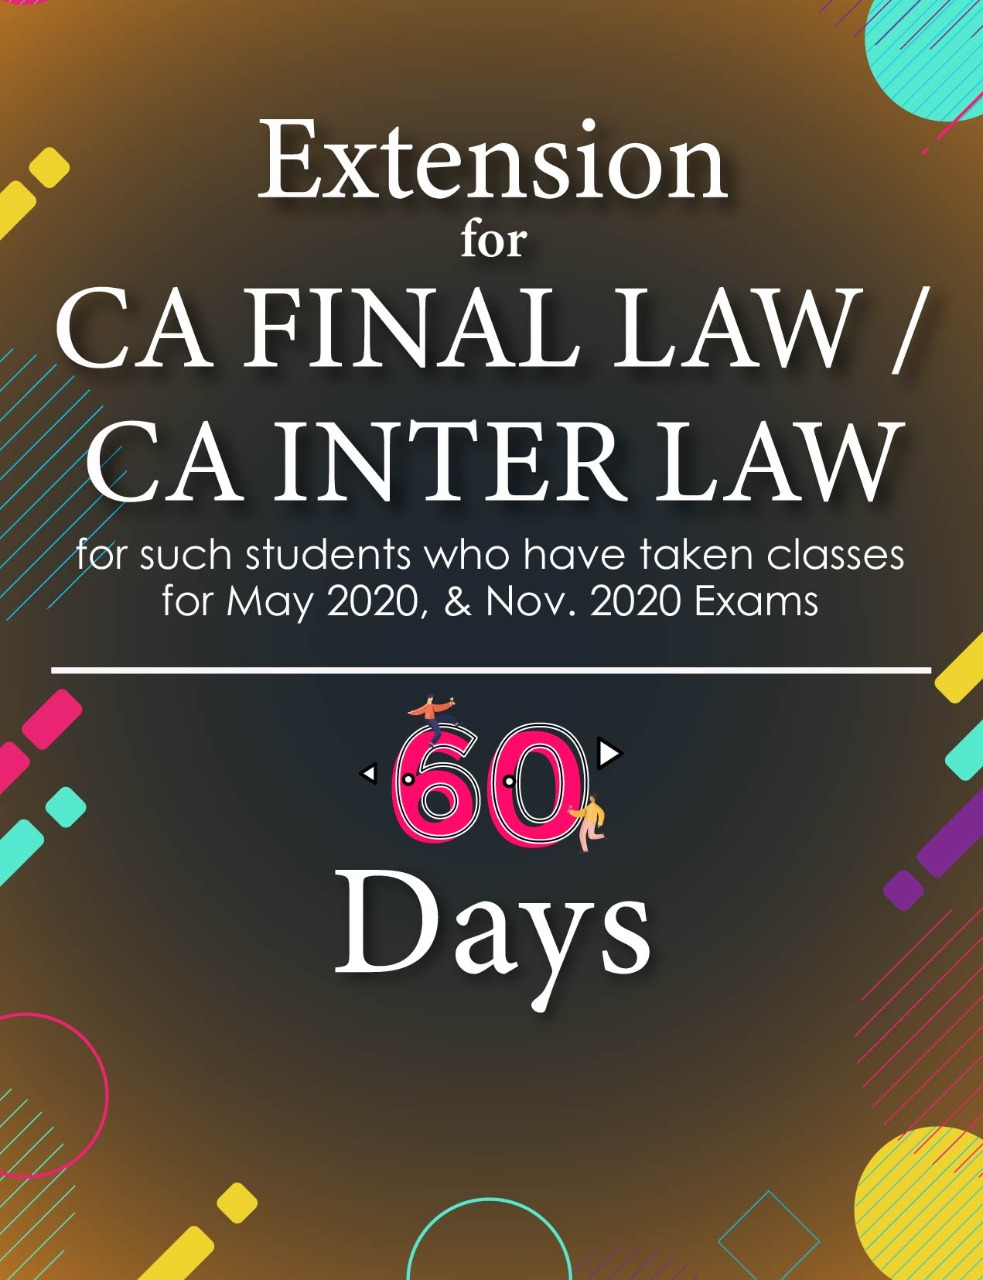 extension-of-ca-final-law-and-ca-inter-law-lectures-for-60-days